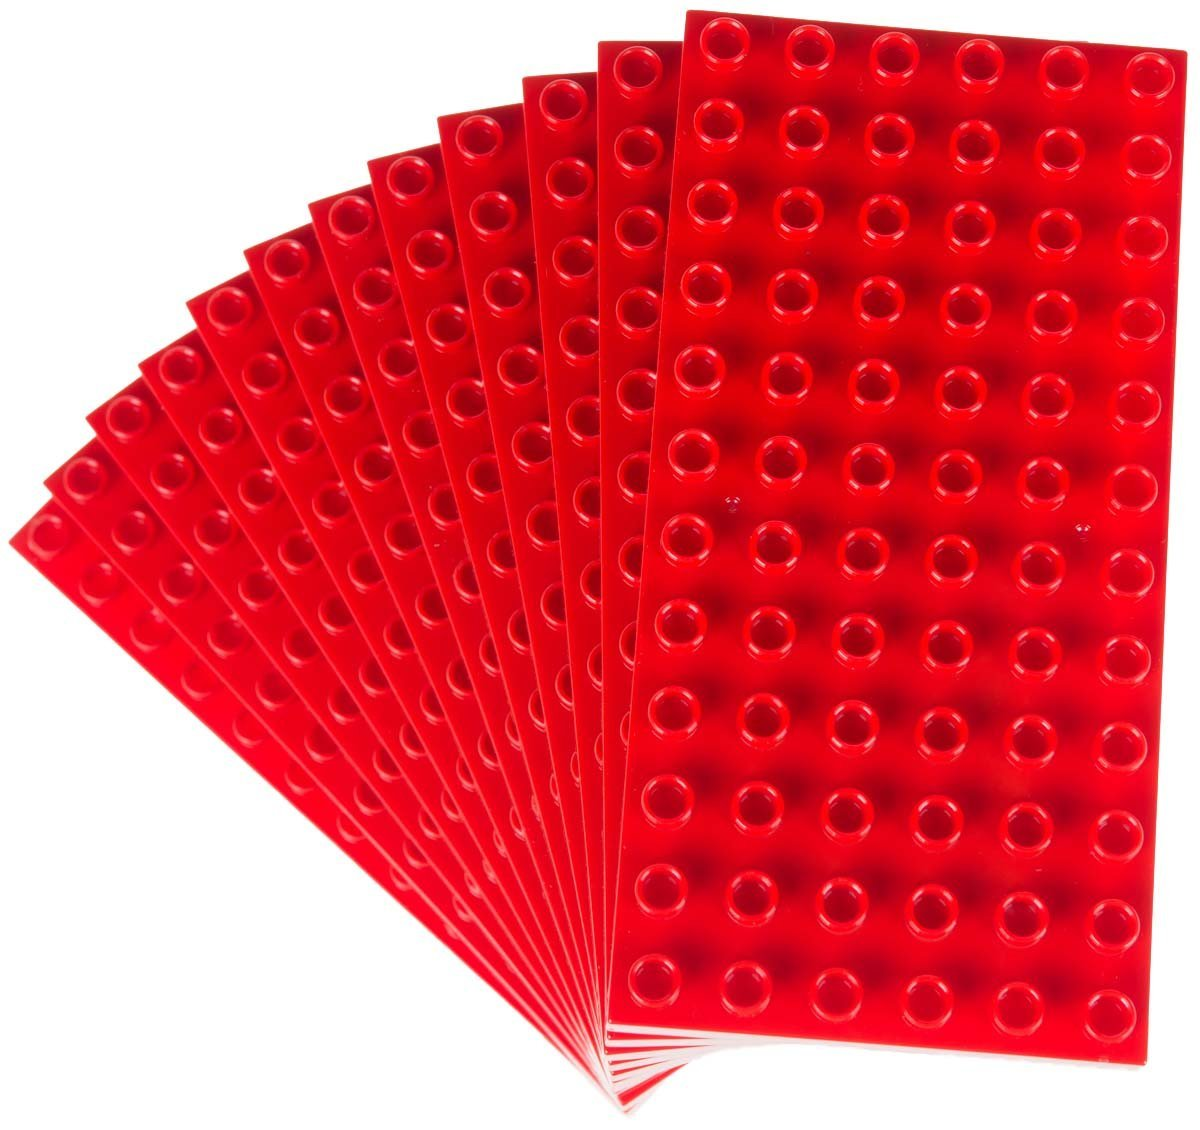 """Classic Big Briks Baseplates by Strictly Bricks   Premium 7.5"""" x 3.75"""" Large Brick Building Base Plates   100% Compatible with All Major Large Brick Brands   12 Stackable Baseplates: Red Review"""